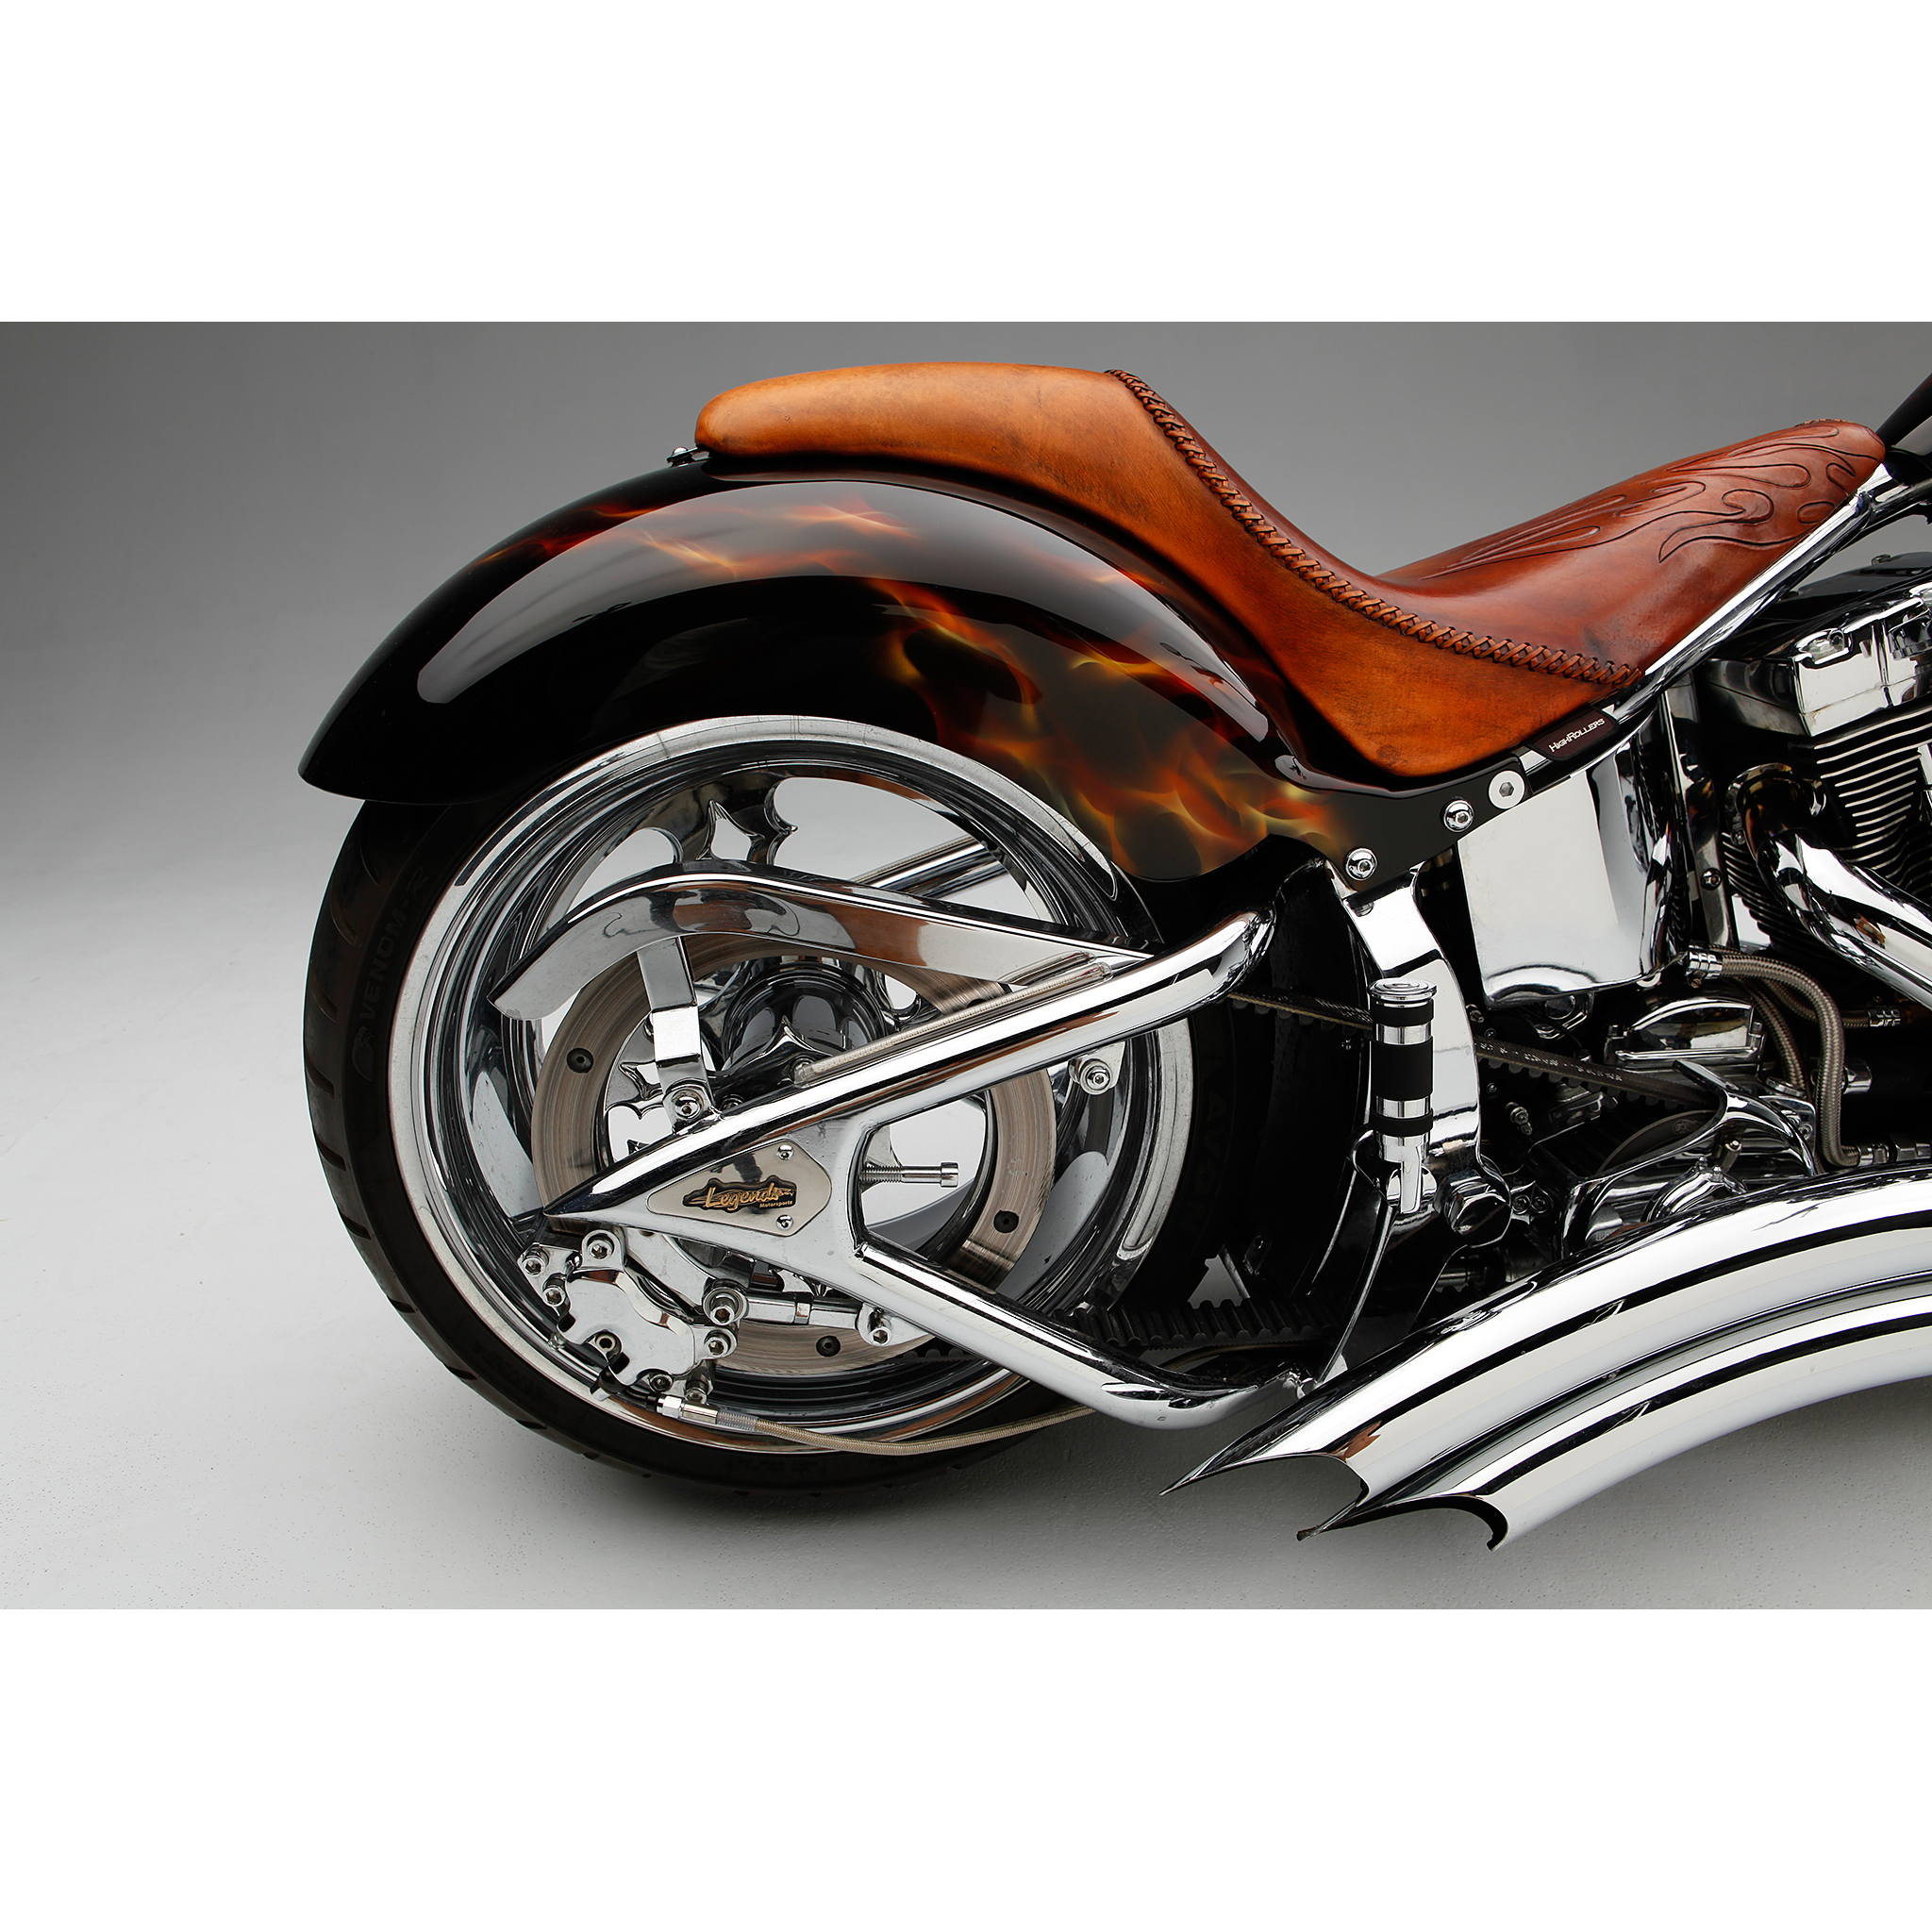 Photo of a custom motorcycle chopper paint and exhaust pipes